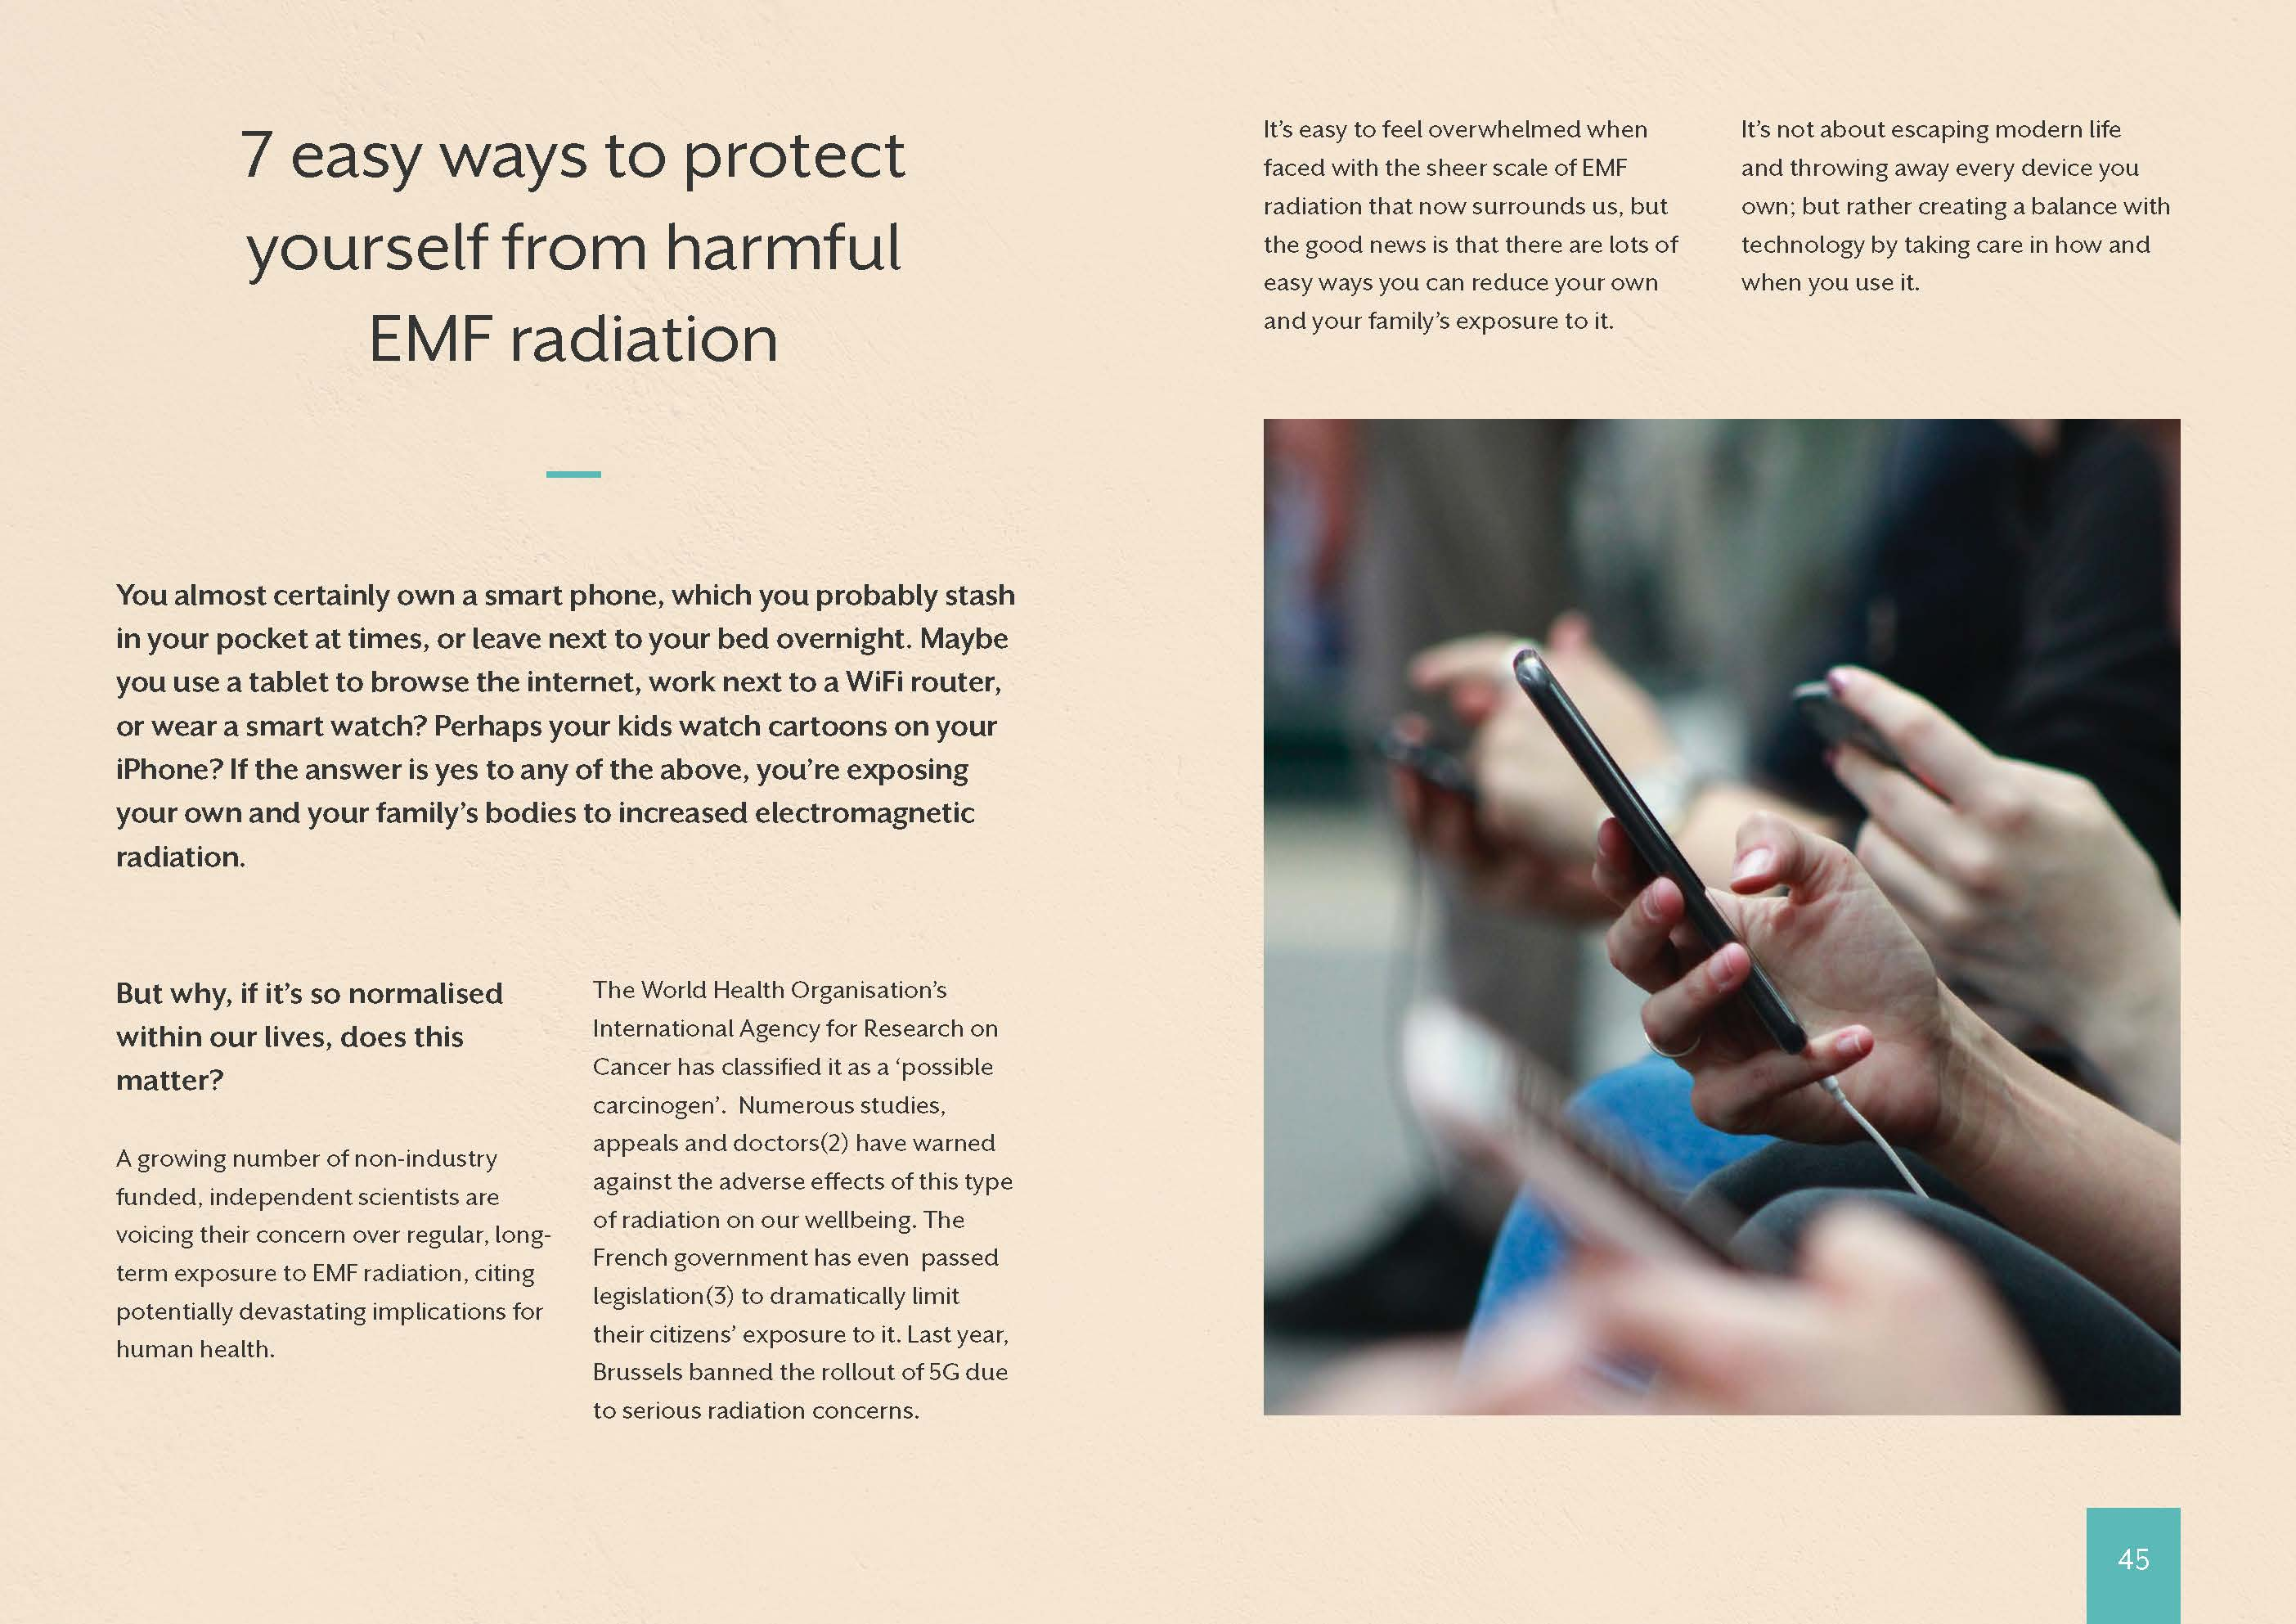 7 easy ways to protect yourself from harmful EMF radiation